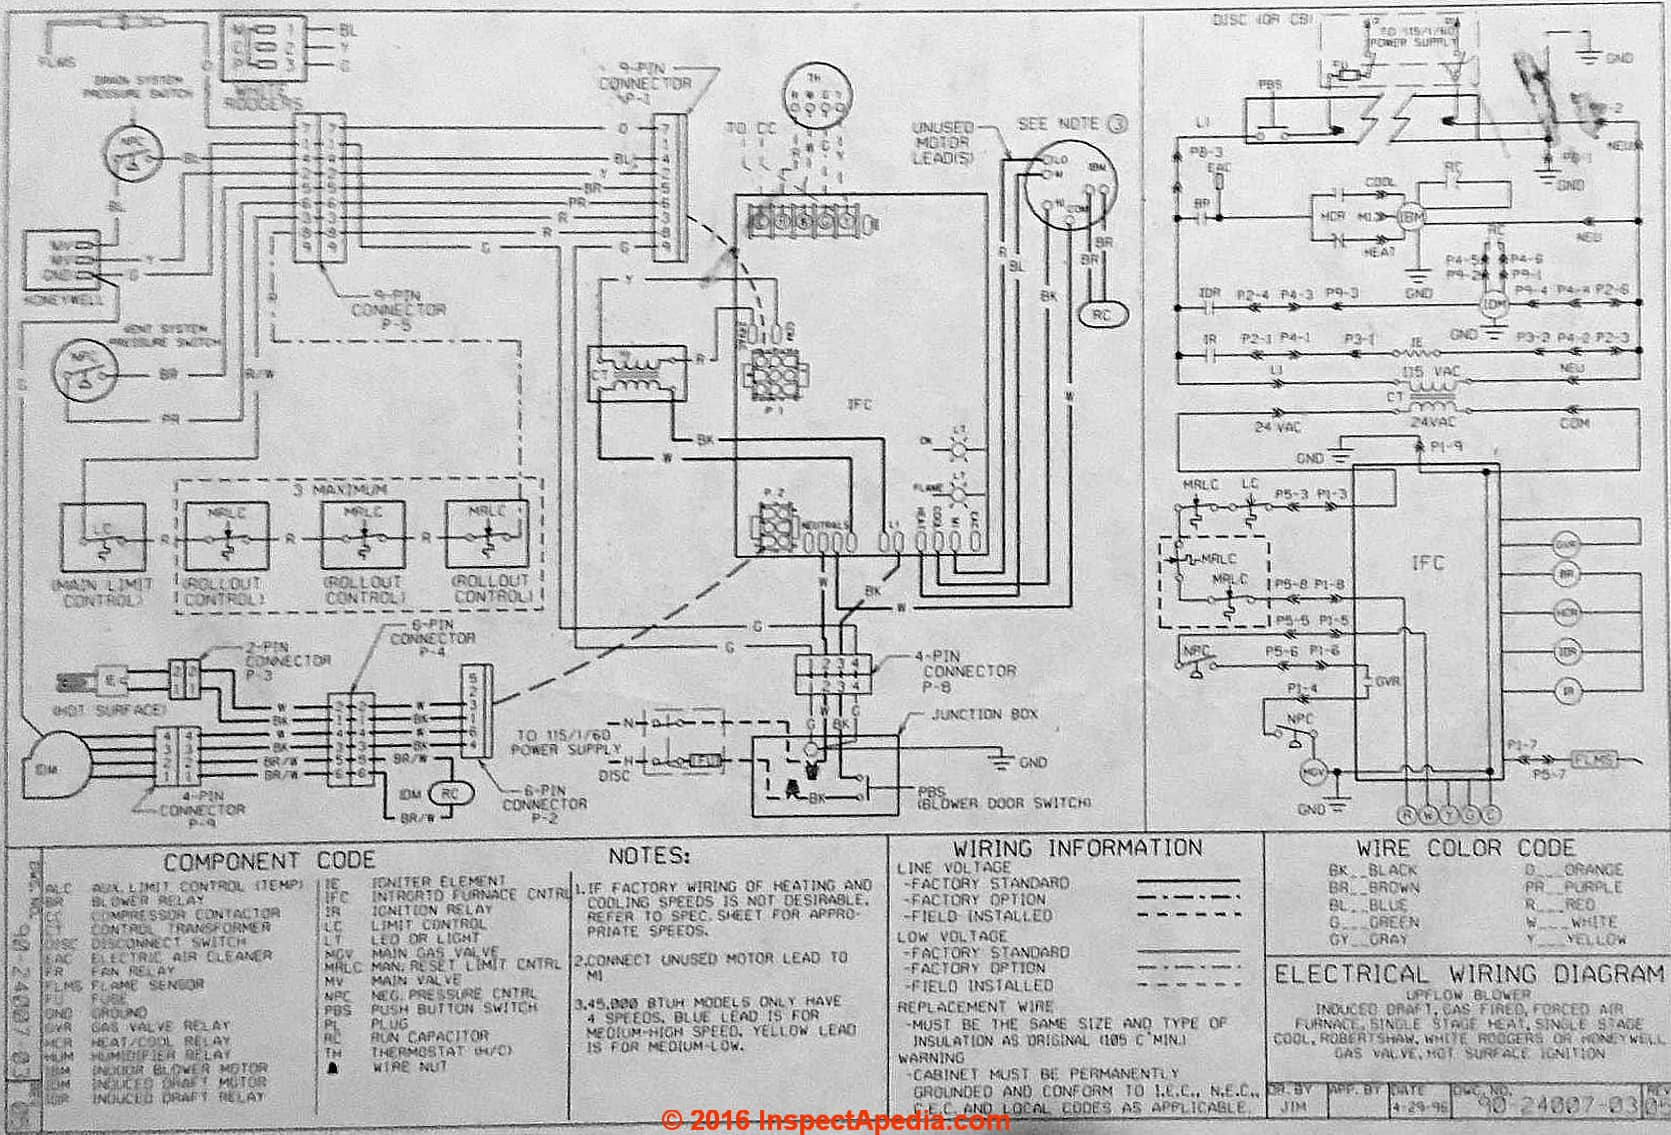 Rheem Thermostat Wiring Color Code.Thermostat.Auto Engine Wiring ...